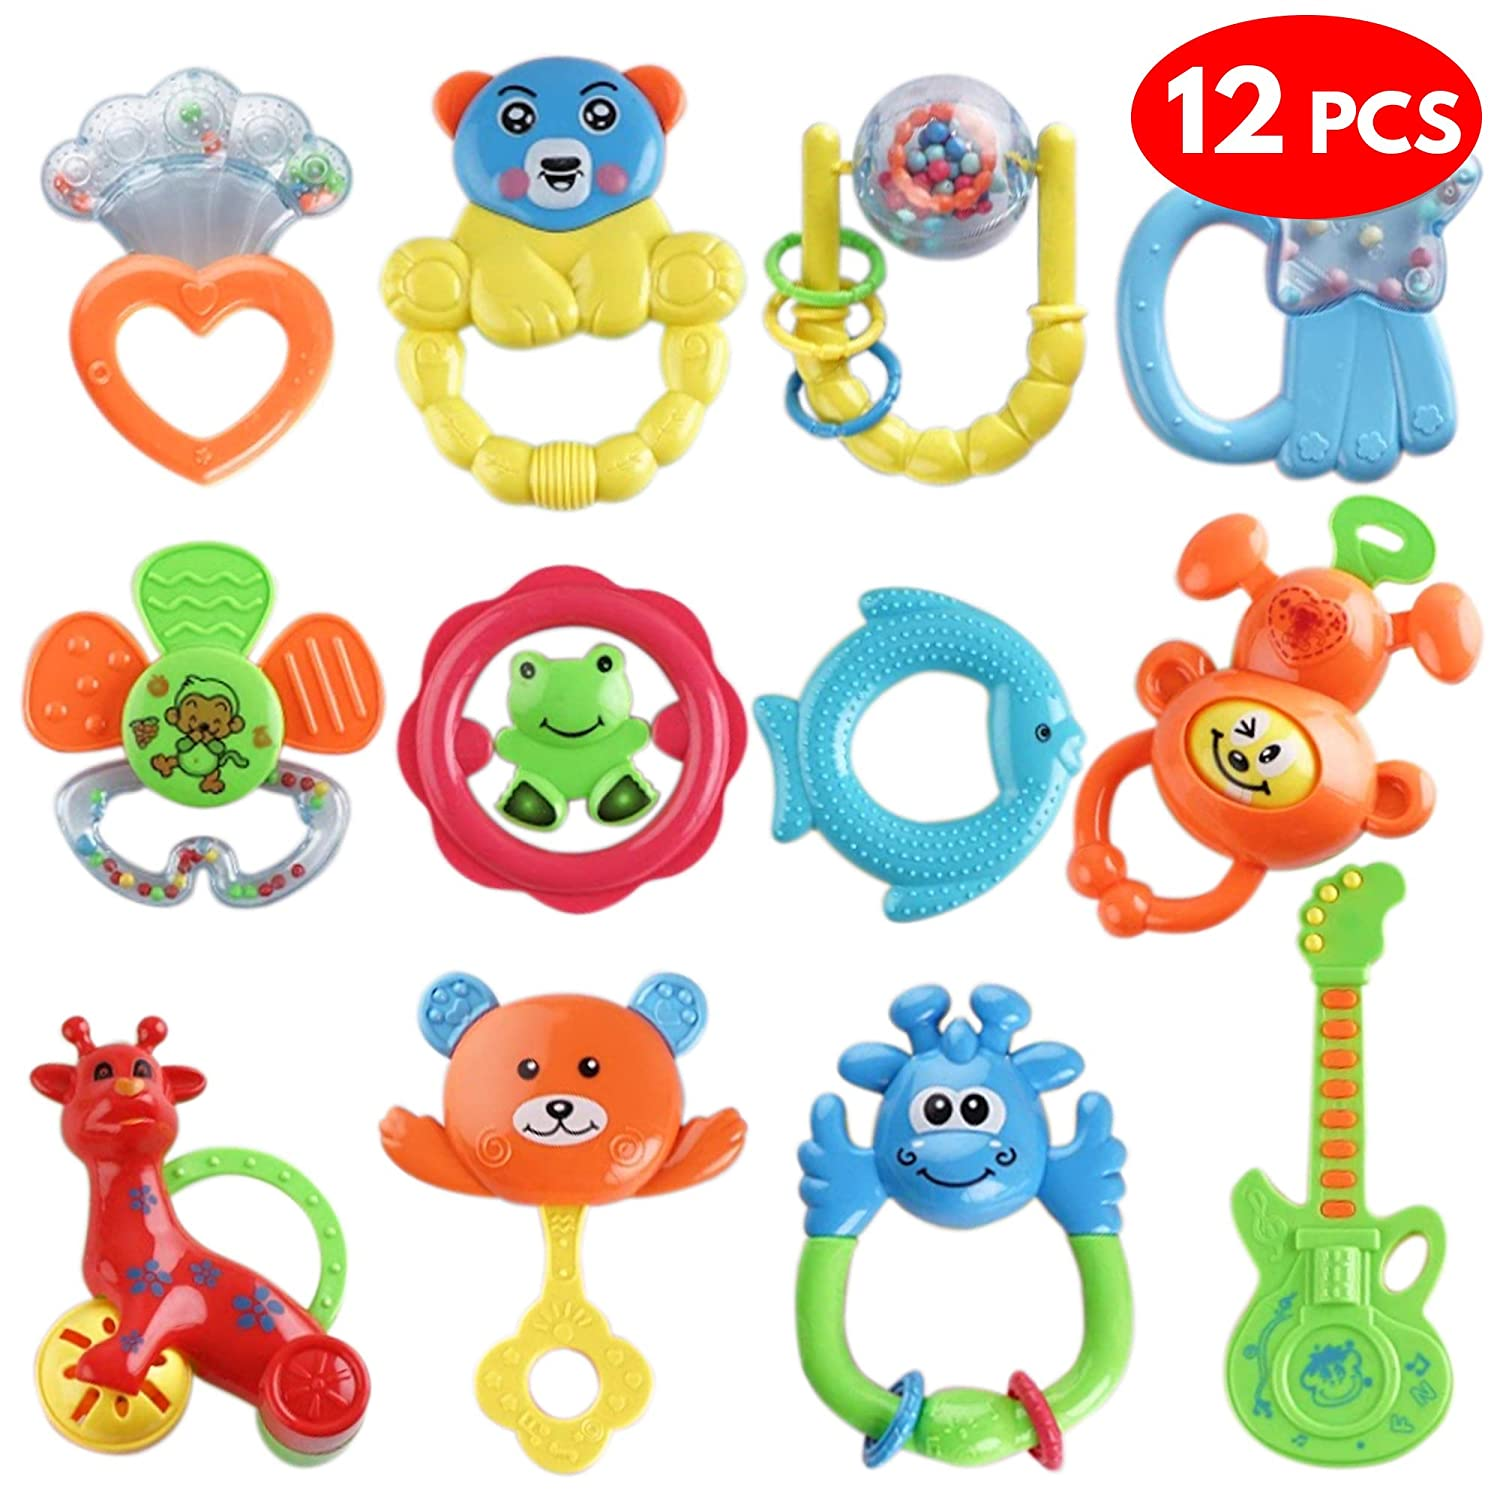 12 Pcs Baby Rattles Teether Toys Set - Bright & Attractive Candy Colours - Assorted Choices Teethers, Spin Rattle, Shaking Bell, Grab Toys for Newborn Infant & Toddler Sensory Set- 100% Non Toxic & BPA Free chuckle